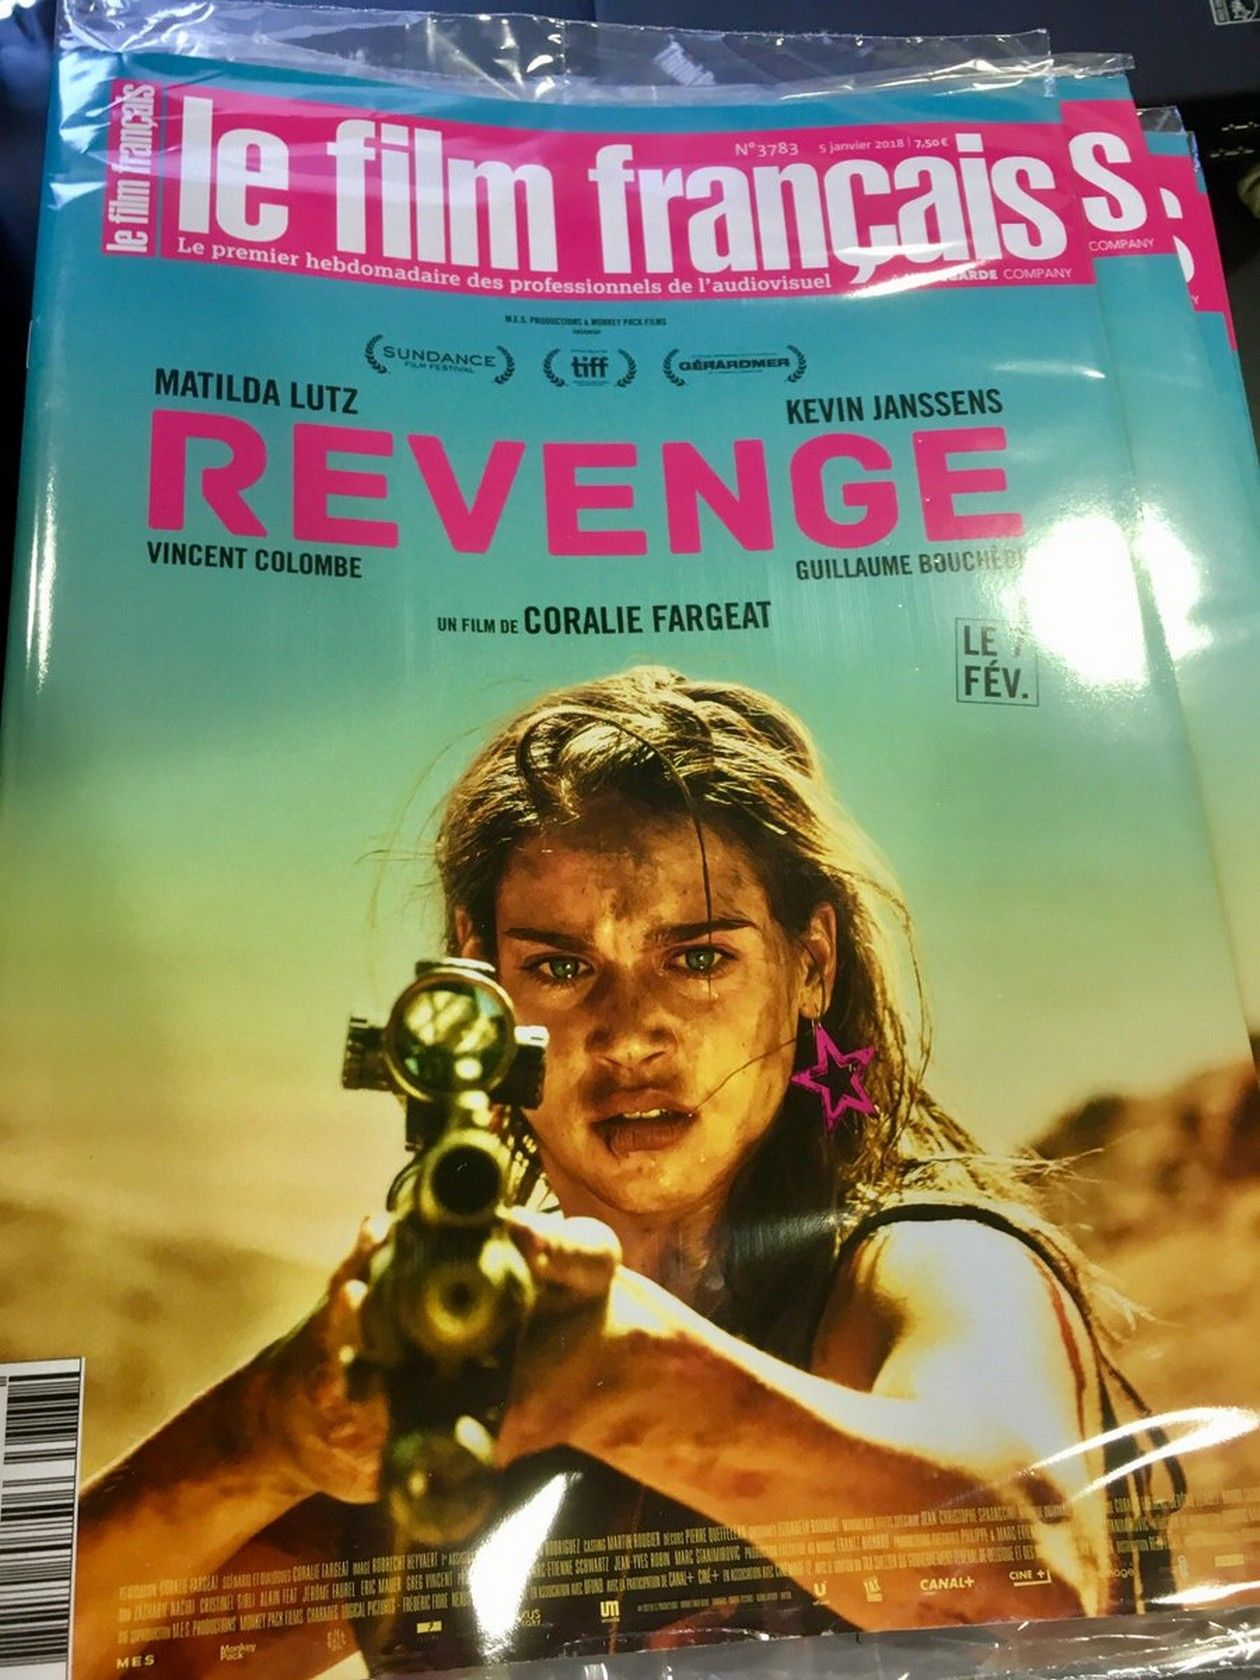 Matilda Lutz Italian actress / Revenge : Jennifer / Coralie Fargeat 2017 / COVER COUVERTURE LE FILM FRANCAIS